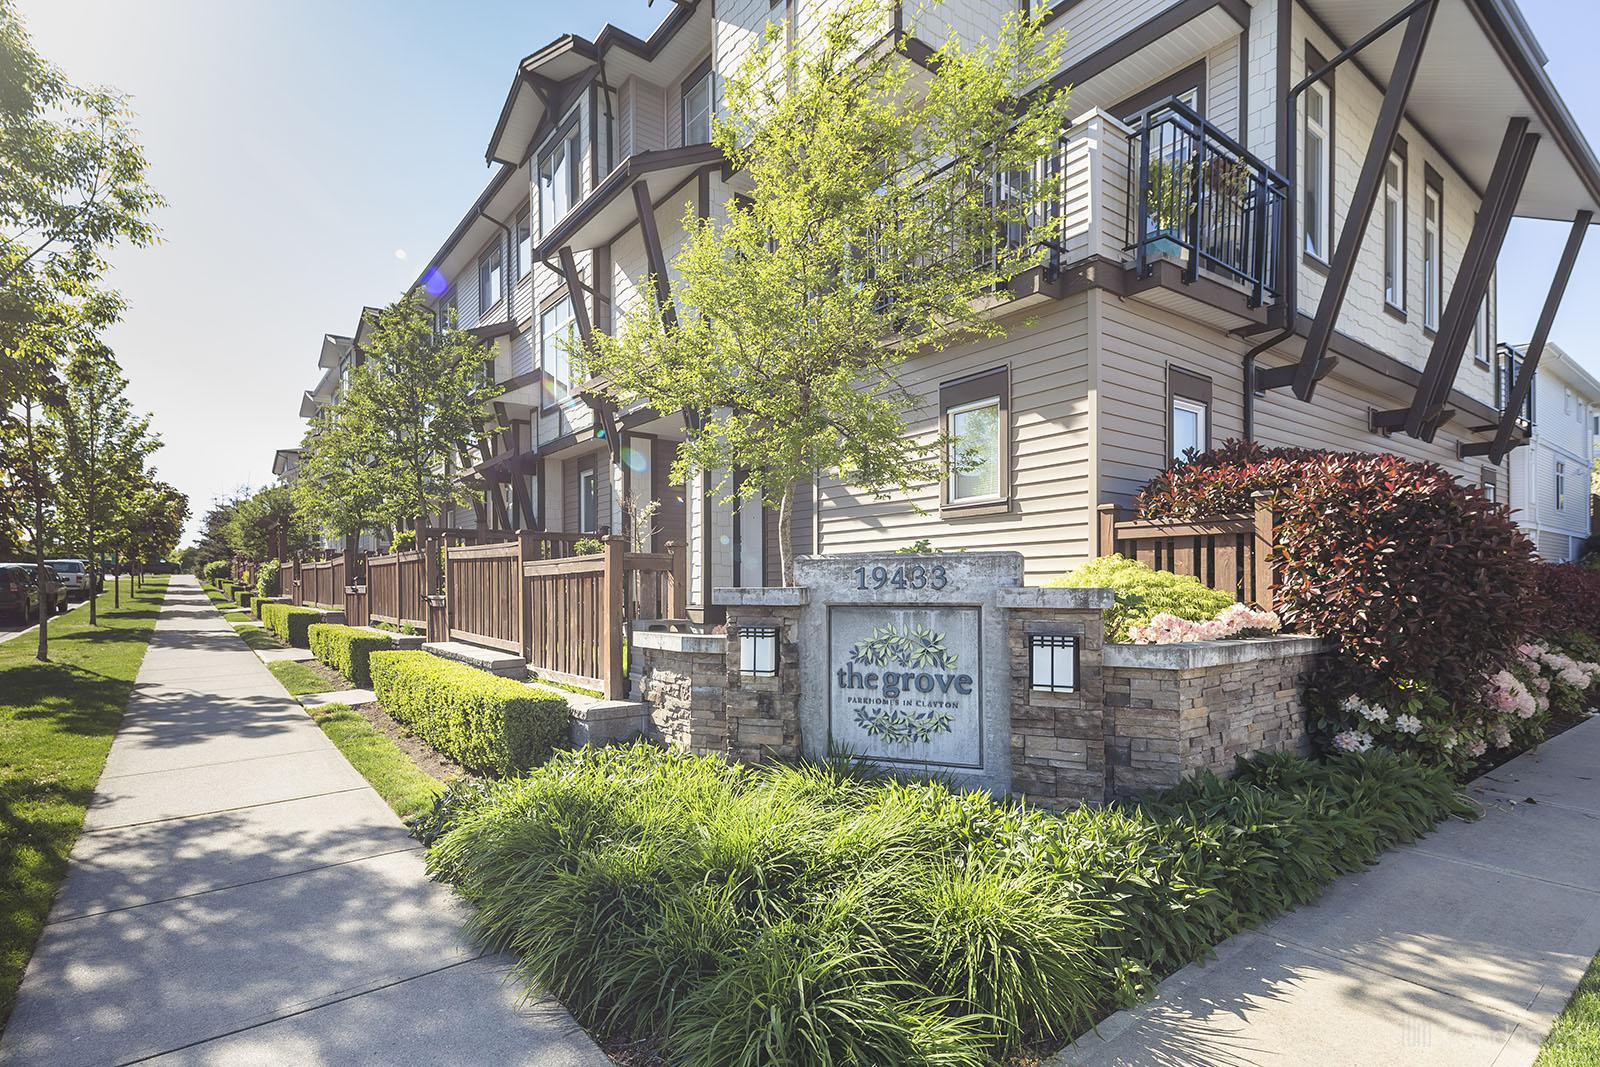 The Grove Parkhomes in Clayton at 19433 68 Ave, Surrey 0